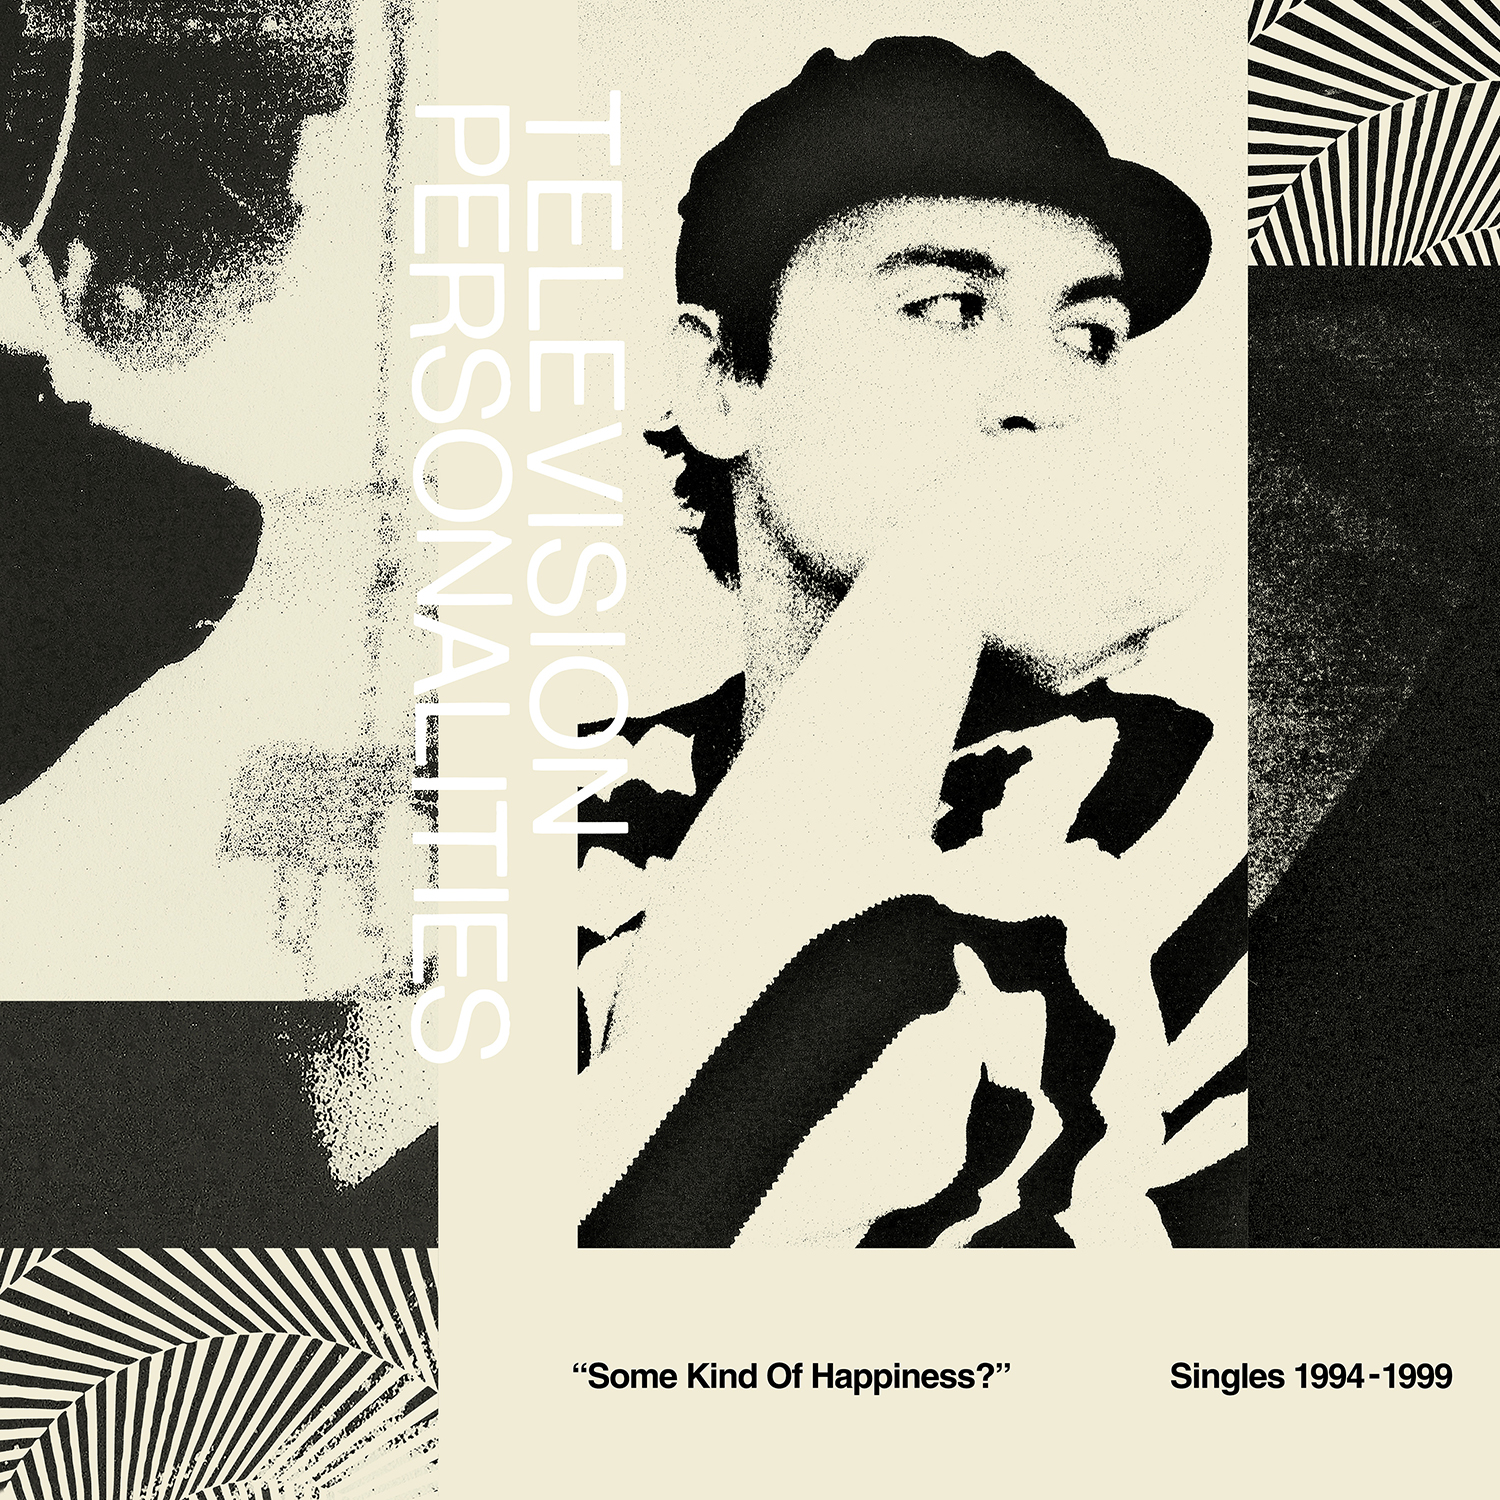 News – The Television Personalities  – Some Kind Of Happiness? – Singles 1994-1999